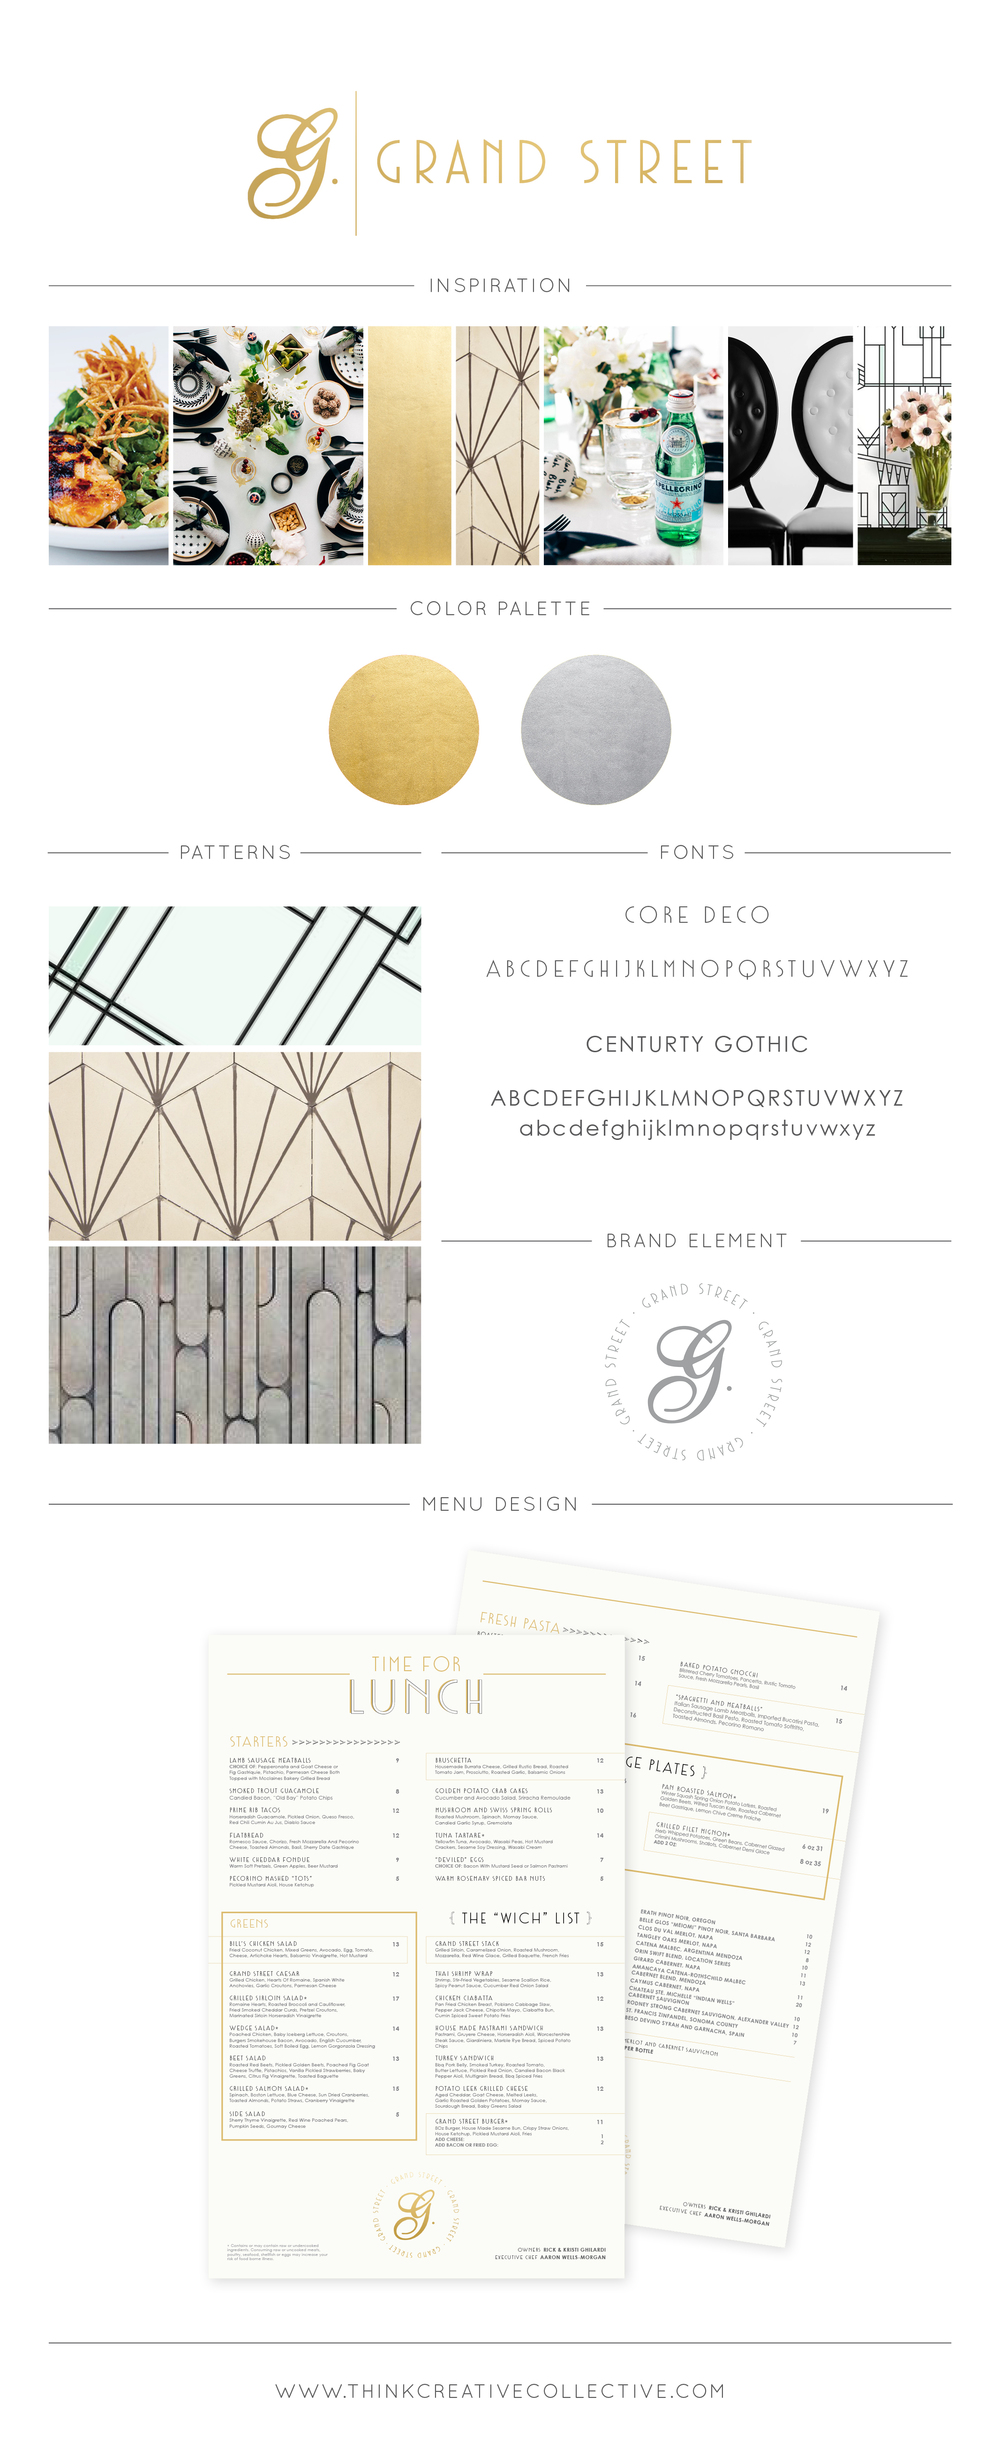 Grand Street  |  Restaurant & Fine Dinning Re-Brand  |  Menu Design  |  Think Creative Collective